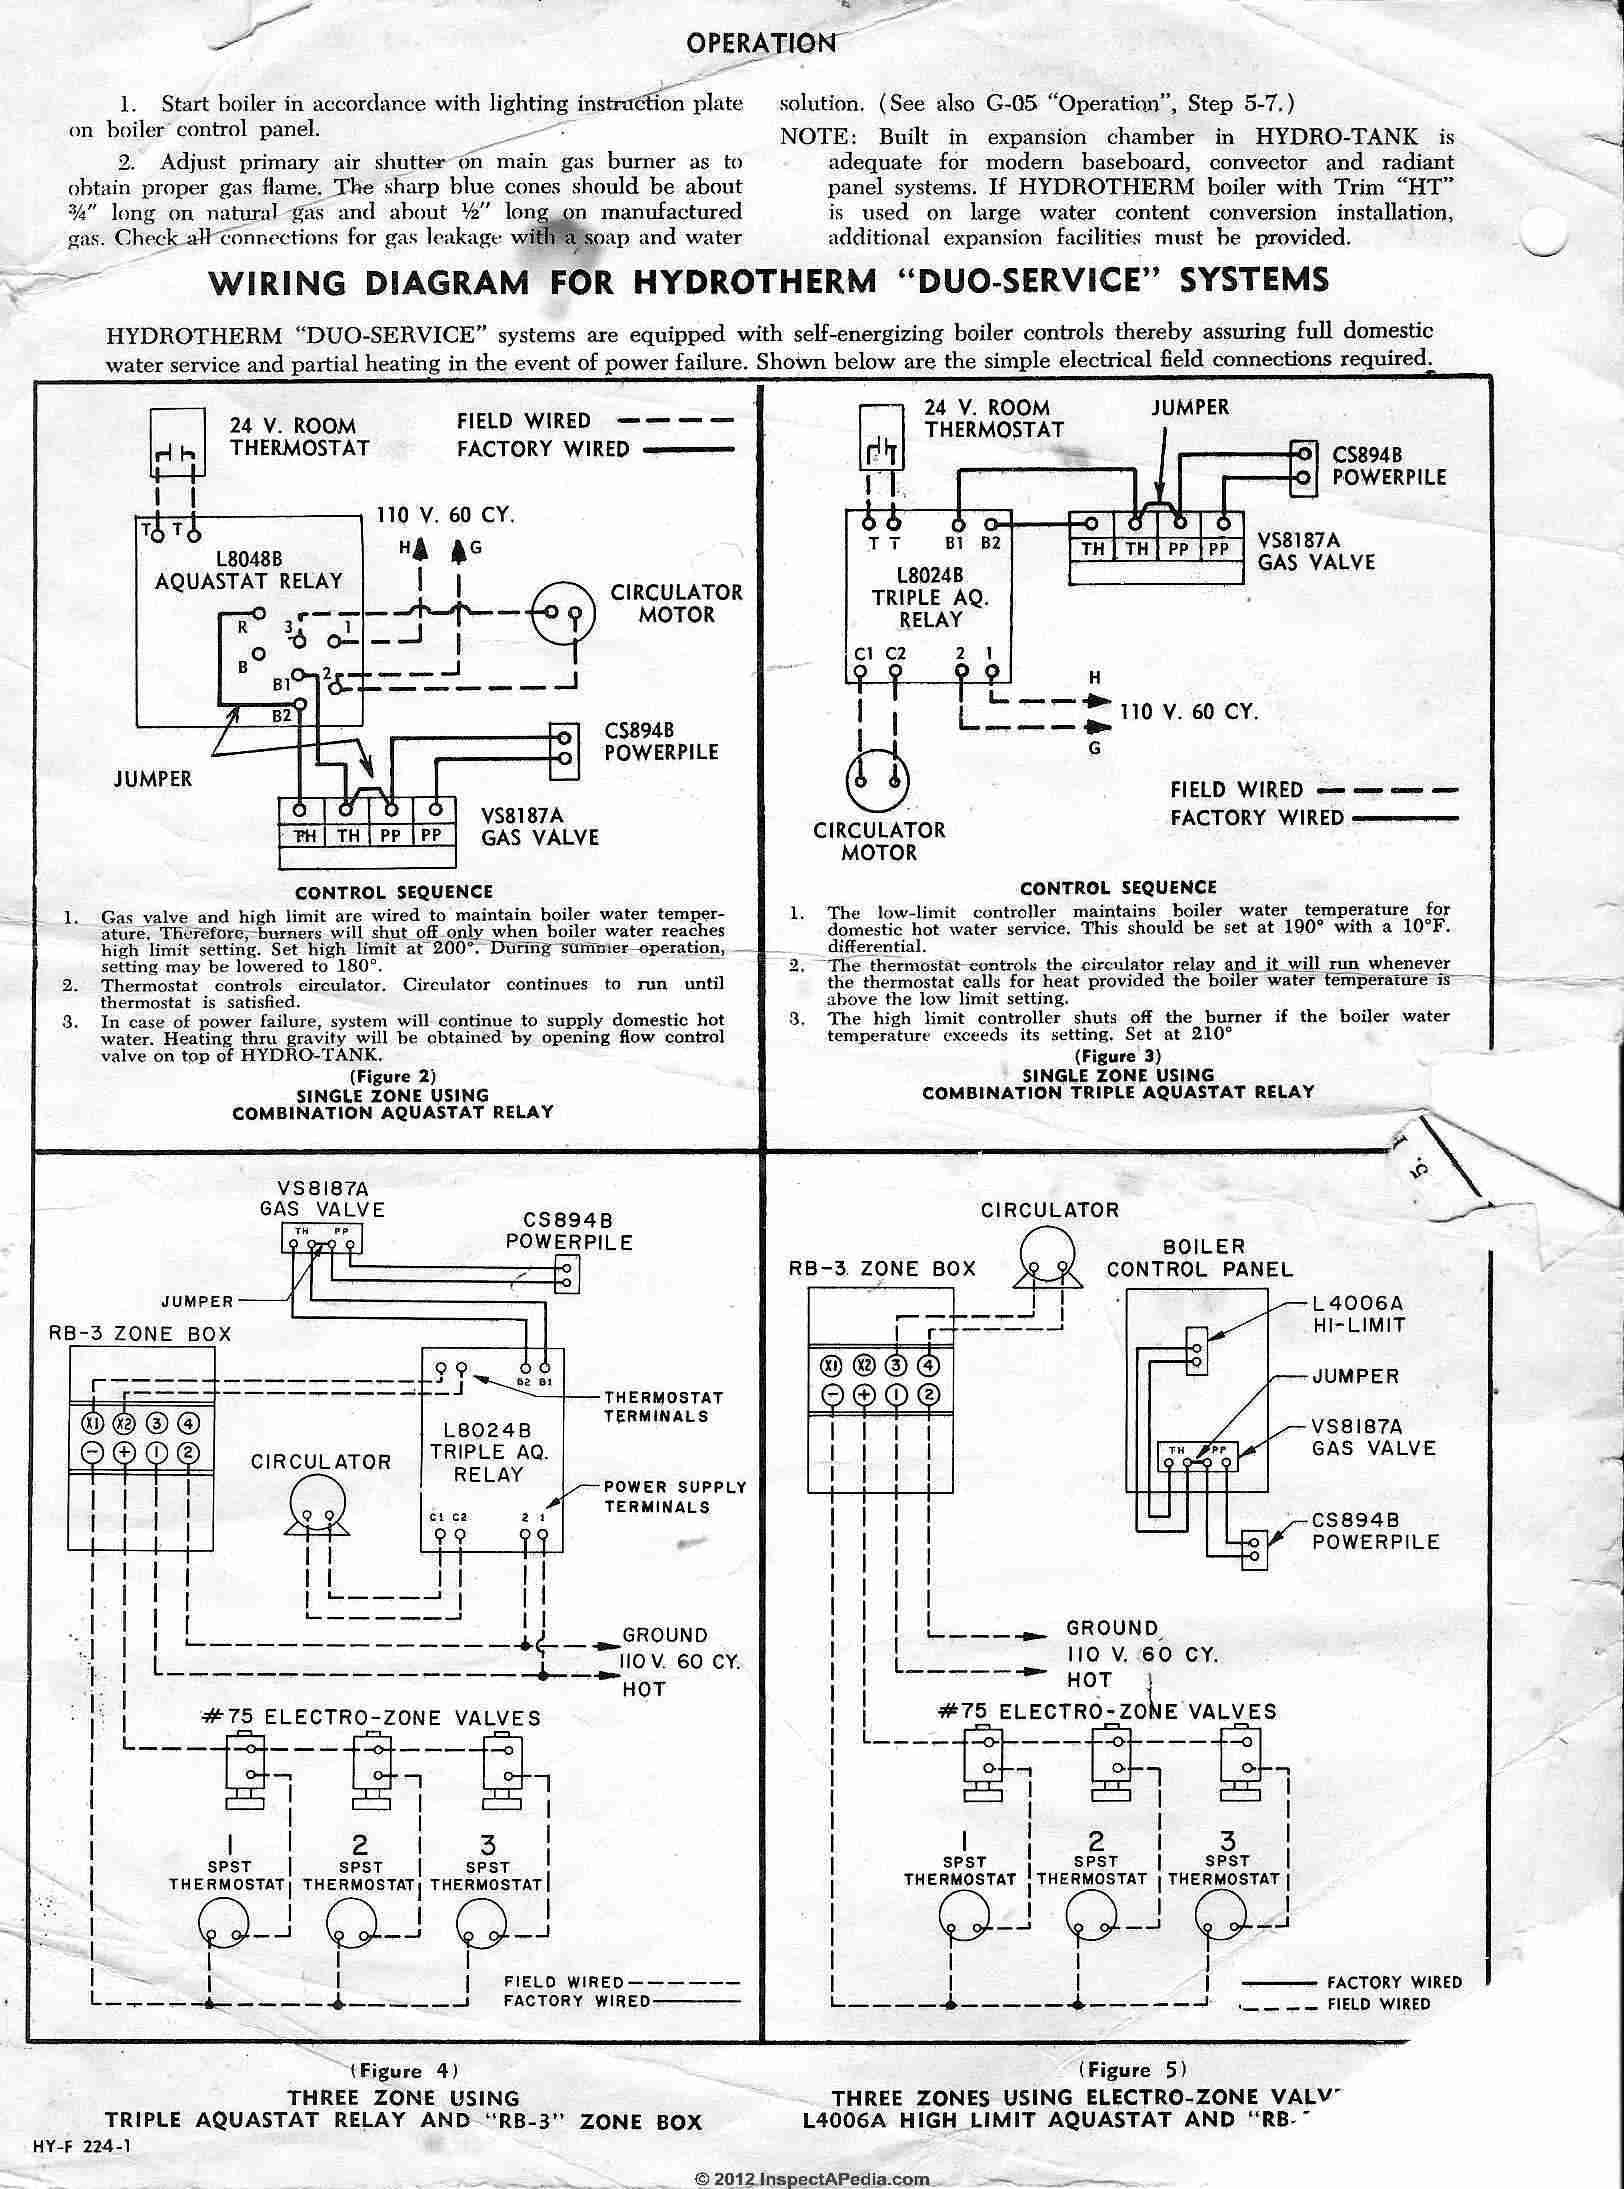 L8024B_Aquastat_0422_DJFcs heating boiler aquastat control diagnosis, troubleshooting, repair honeywell ra832a wiring diagram at eliteediting.co